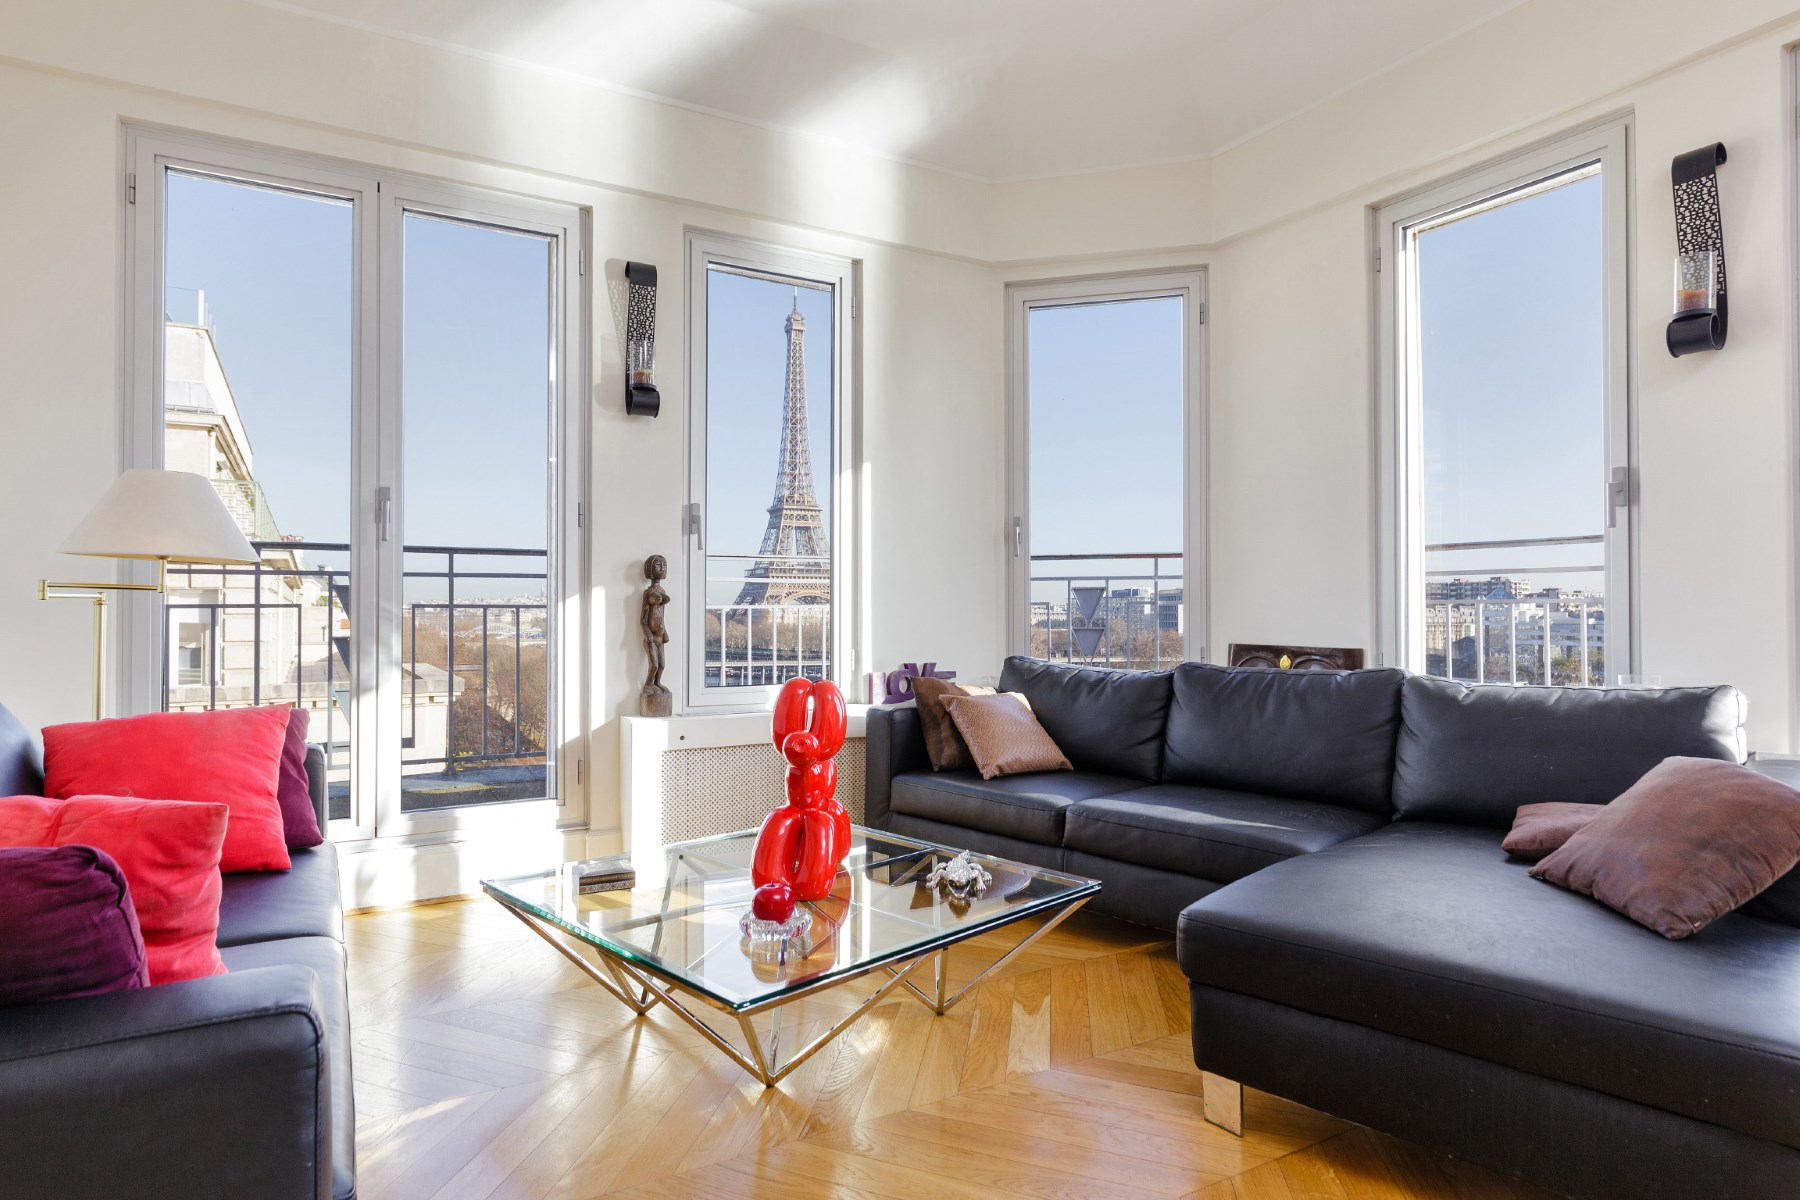 Appartement courte duree paris - Location appartement meuble paris courte duree pas cher ...